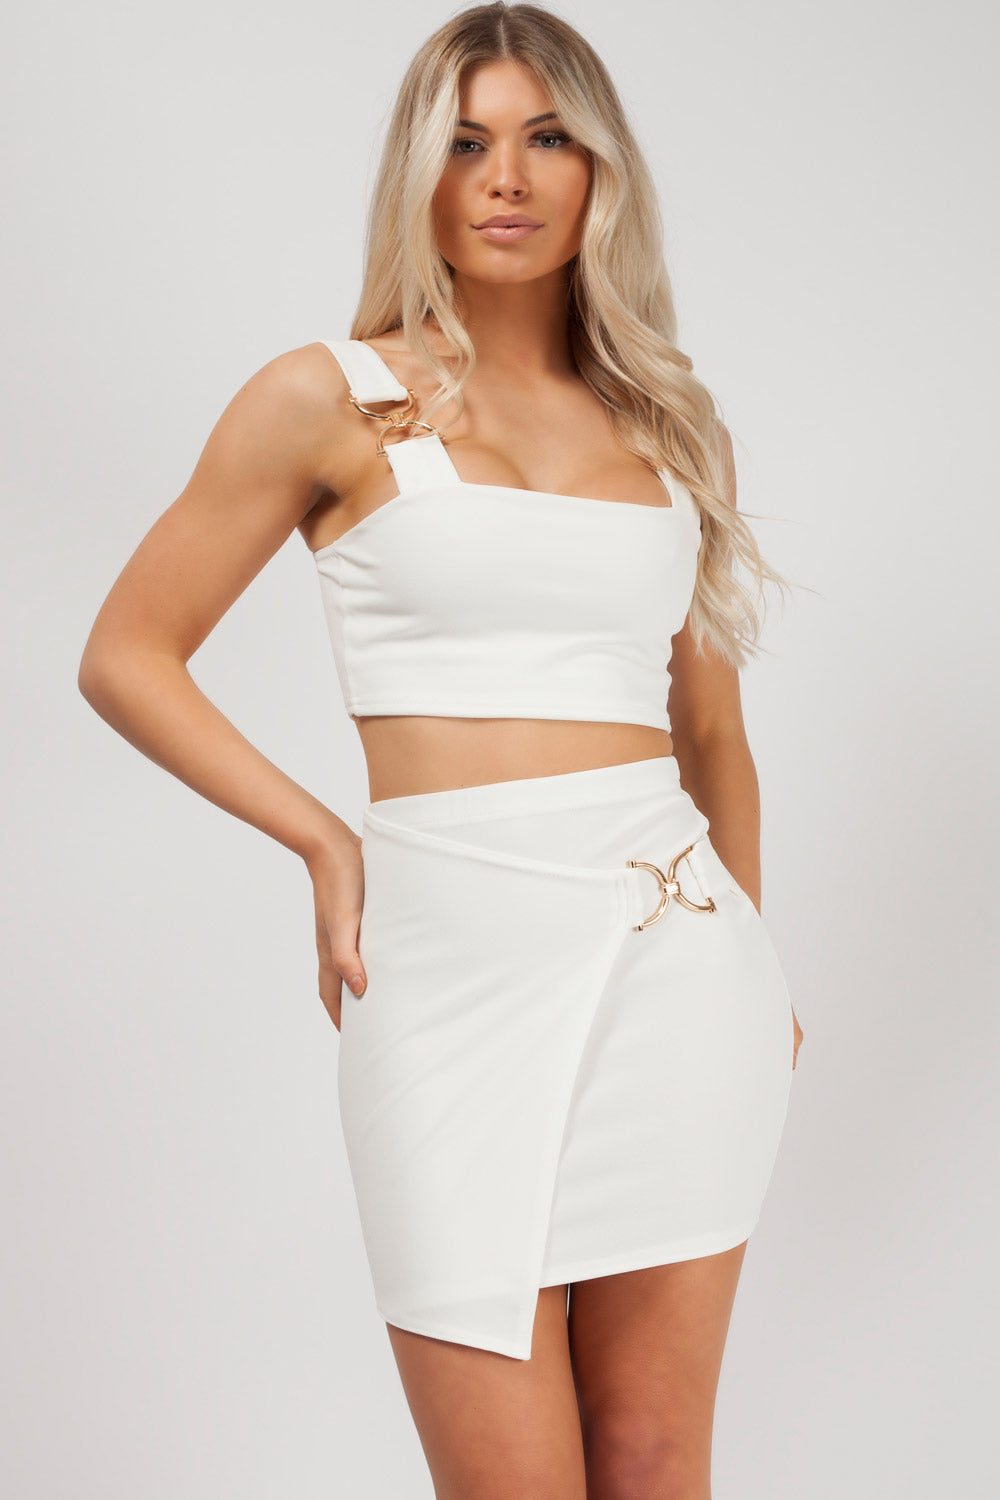 skirt and top set white